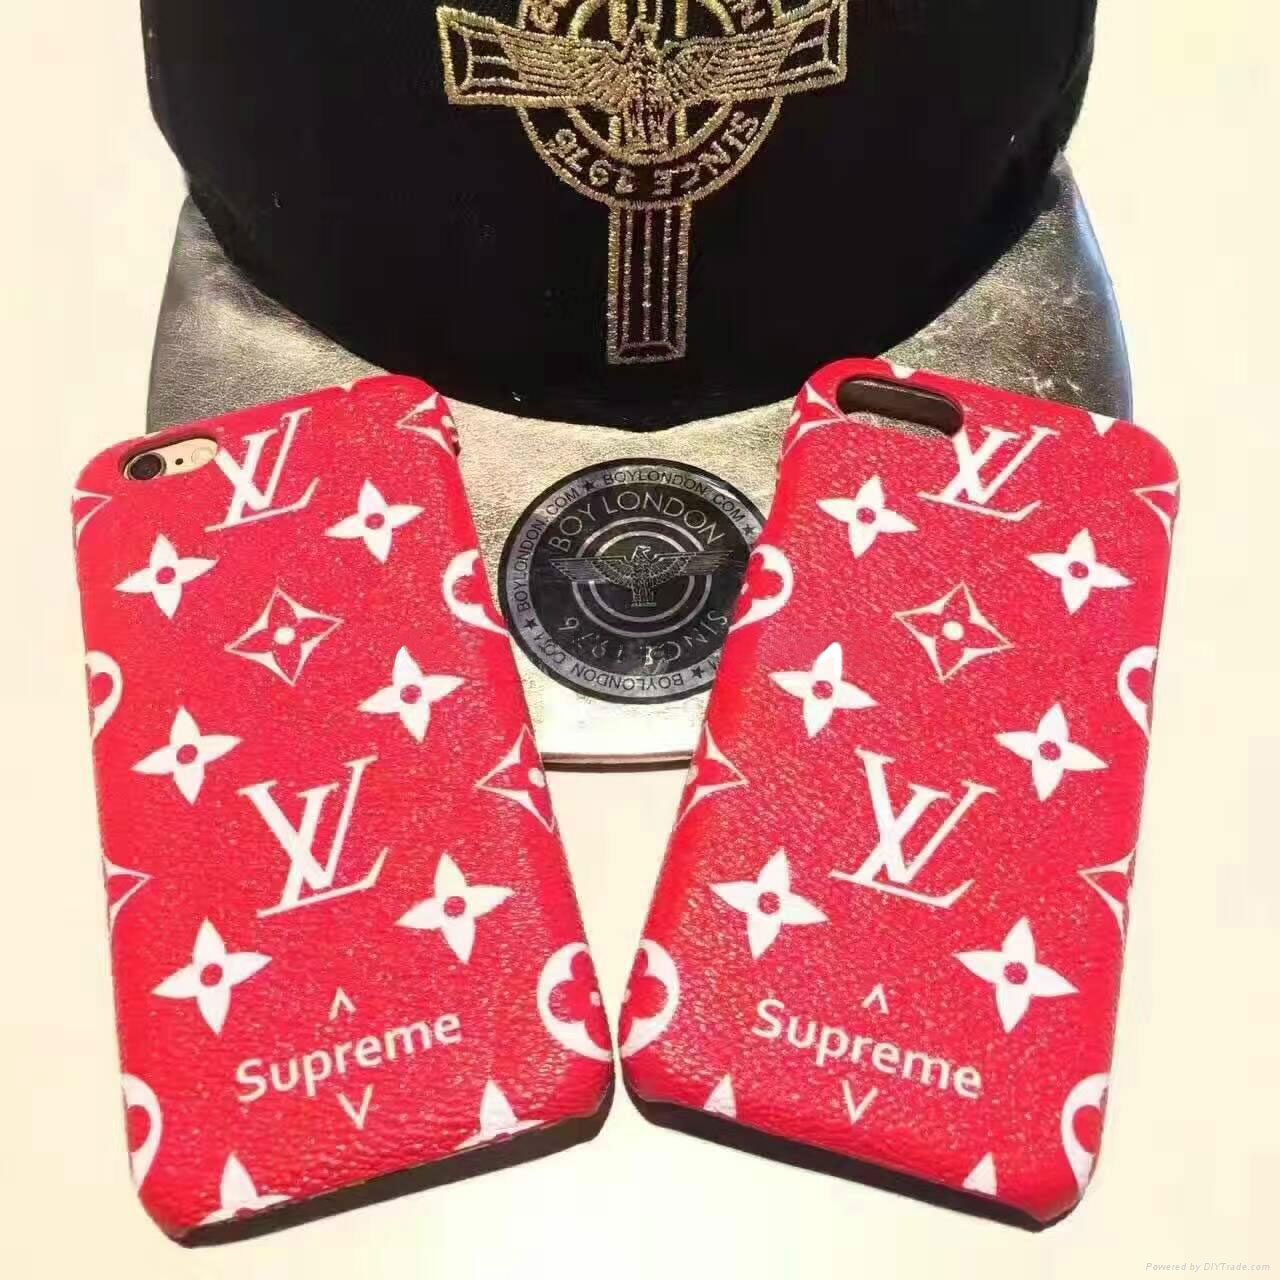 SupremeXLouis Vuitton Iphone6/6s, 6/6sPlus 7, 7Plus,8,8Plus,X,XS,XS Max,XR Case